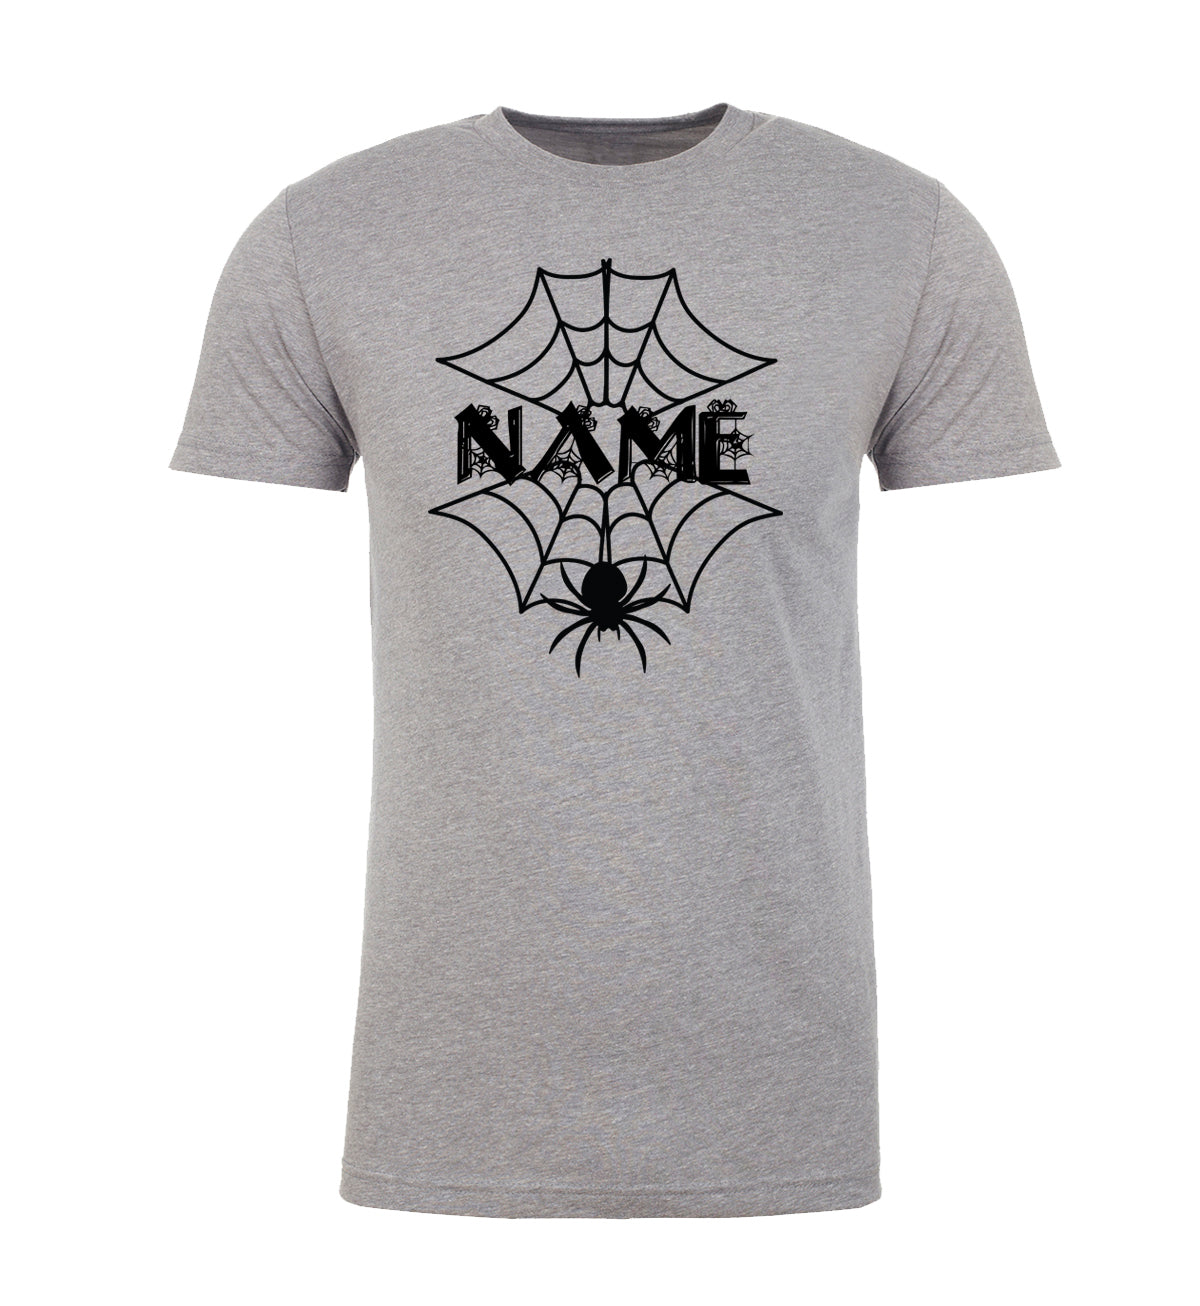 Shirt - Custom Spider Web Name T-shirts, Funny Graphic Tees, Halloween Man's T-Shirts!